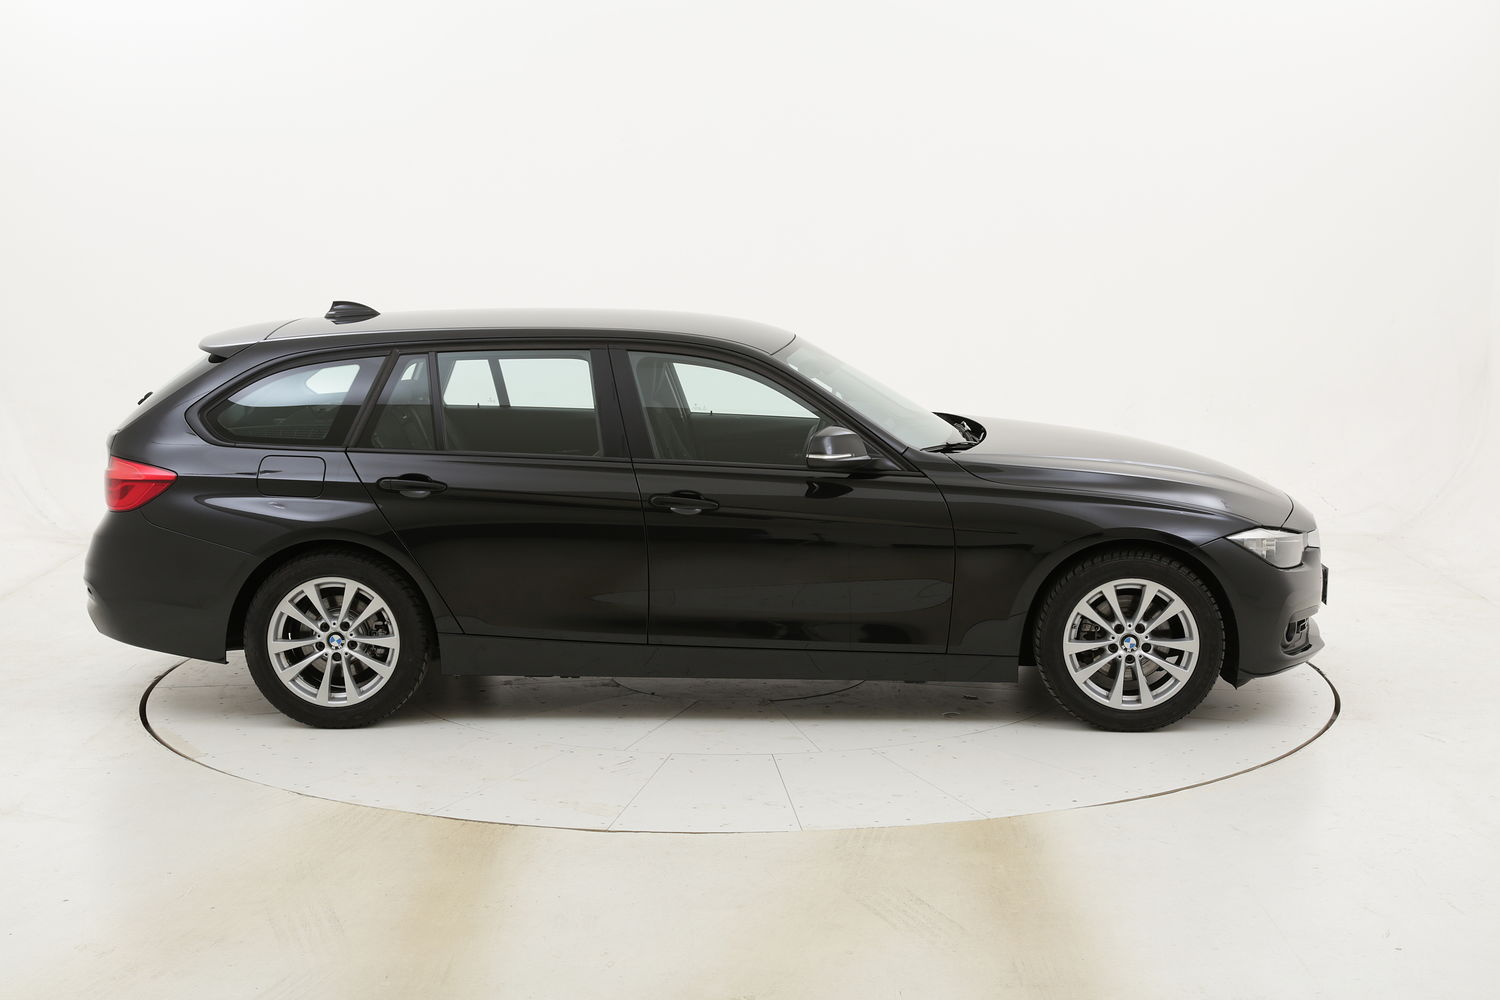 BMW Serie 3 320d Touring Business Advantage aut. usata del 2017 con 113.826 km